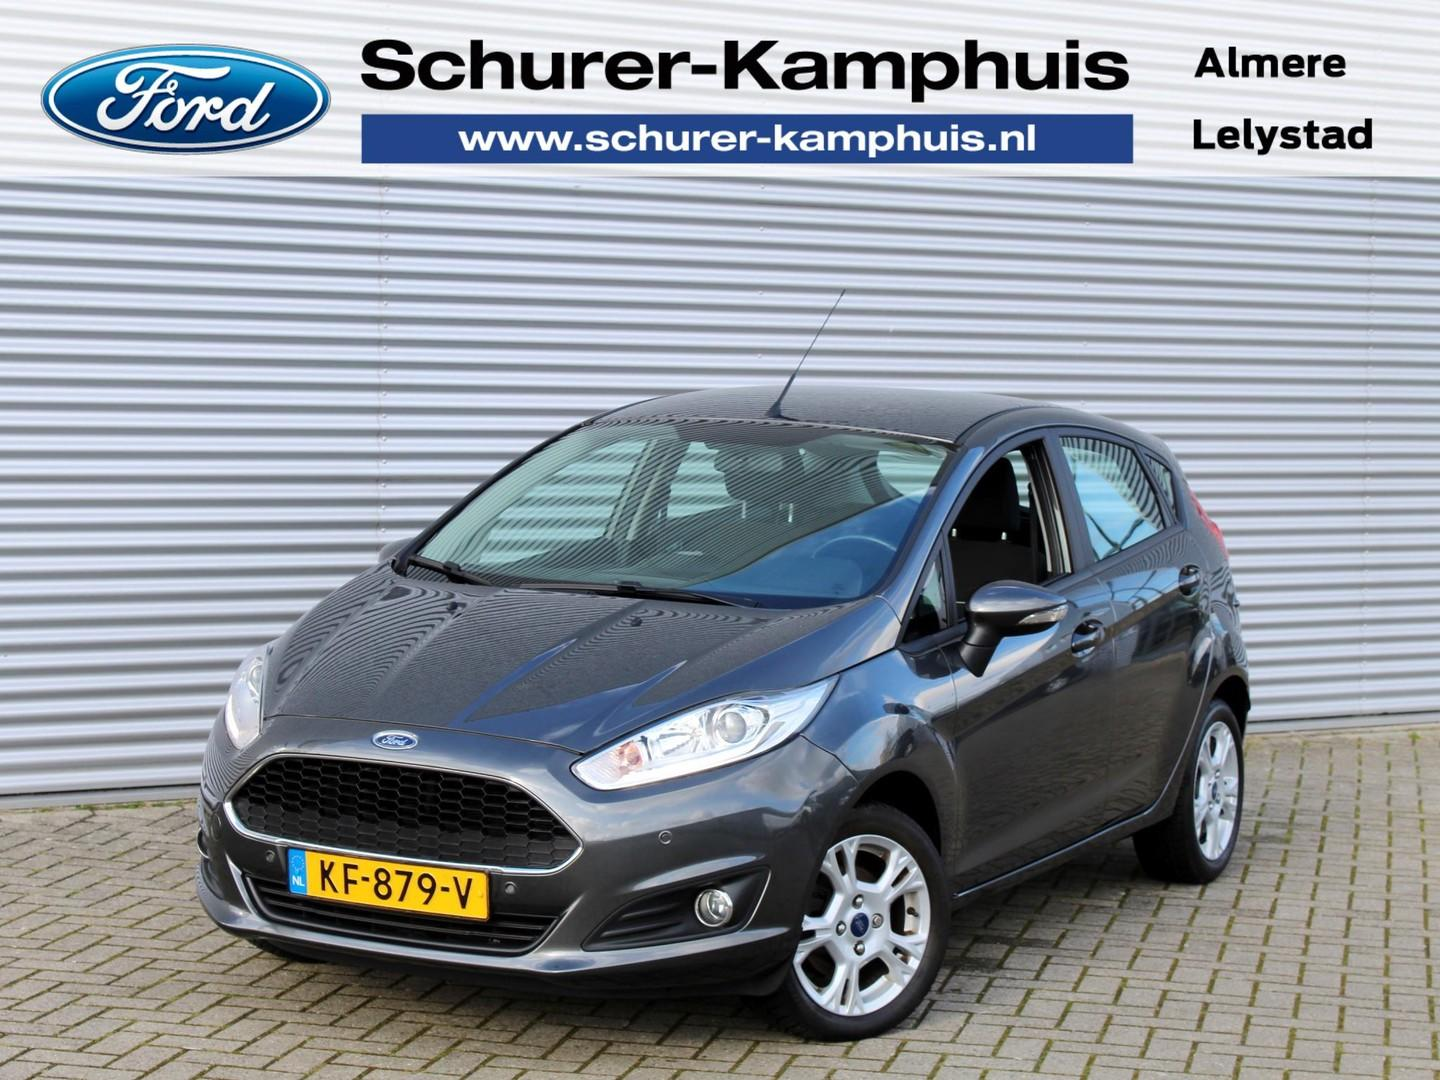 Ford Fiesta 1.0 (80pk) style ultimate 5-drs winterbanden